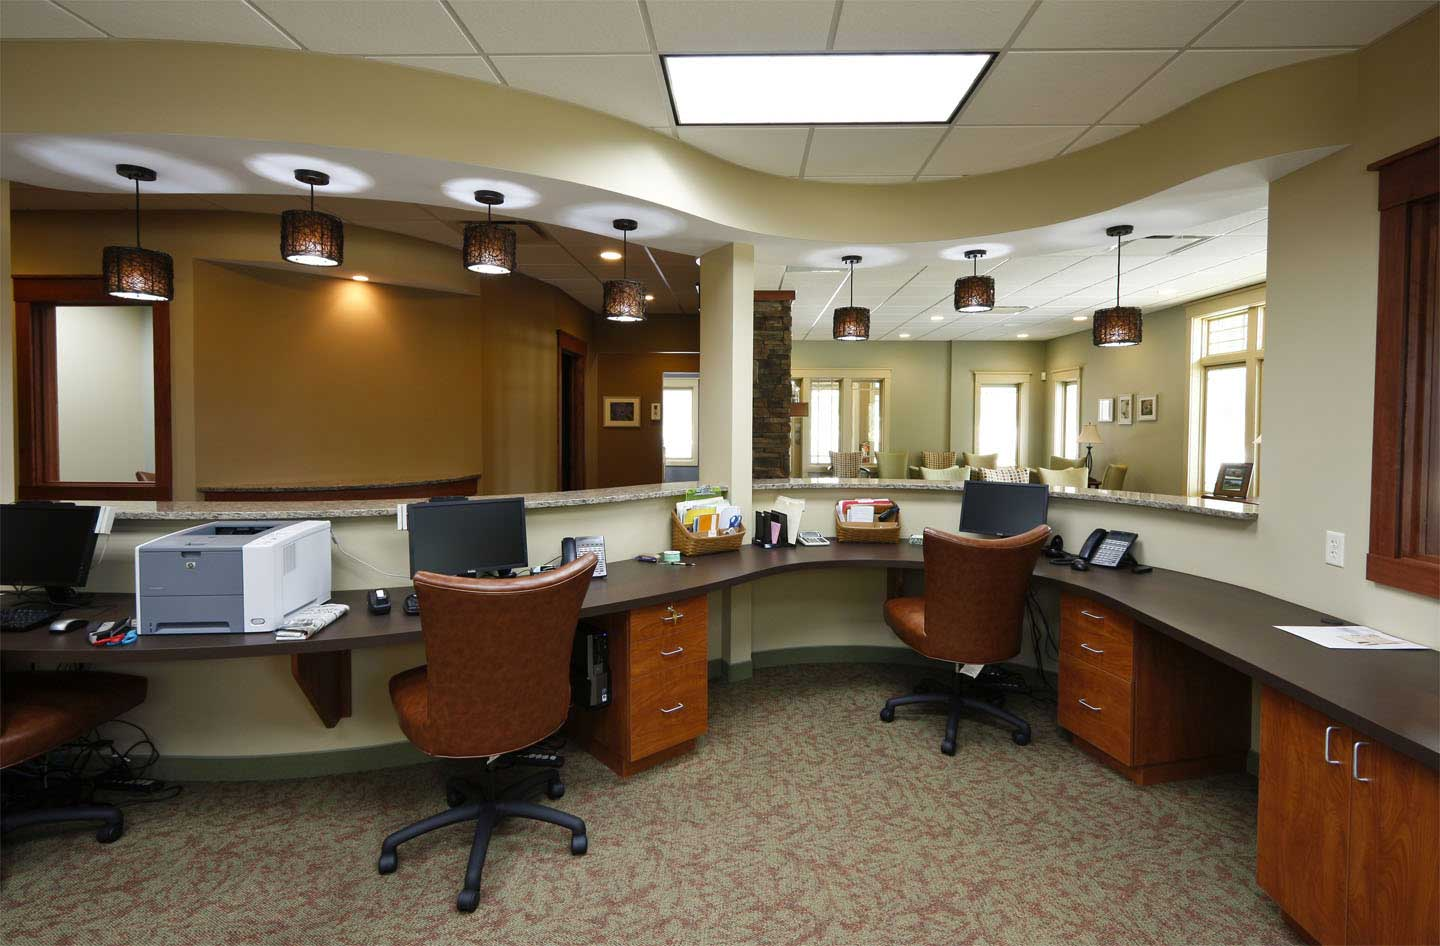 Office interior design dreams house furniture Office interior decorating ideas pictures